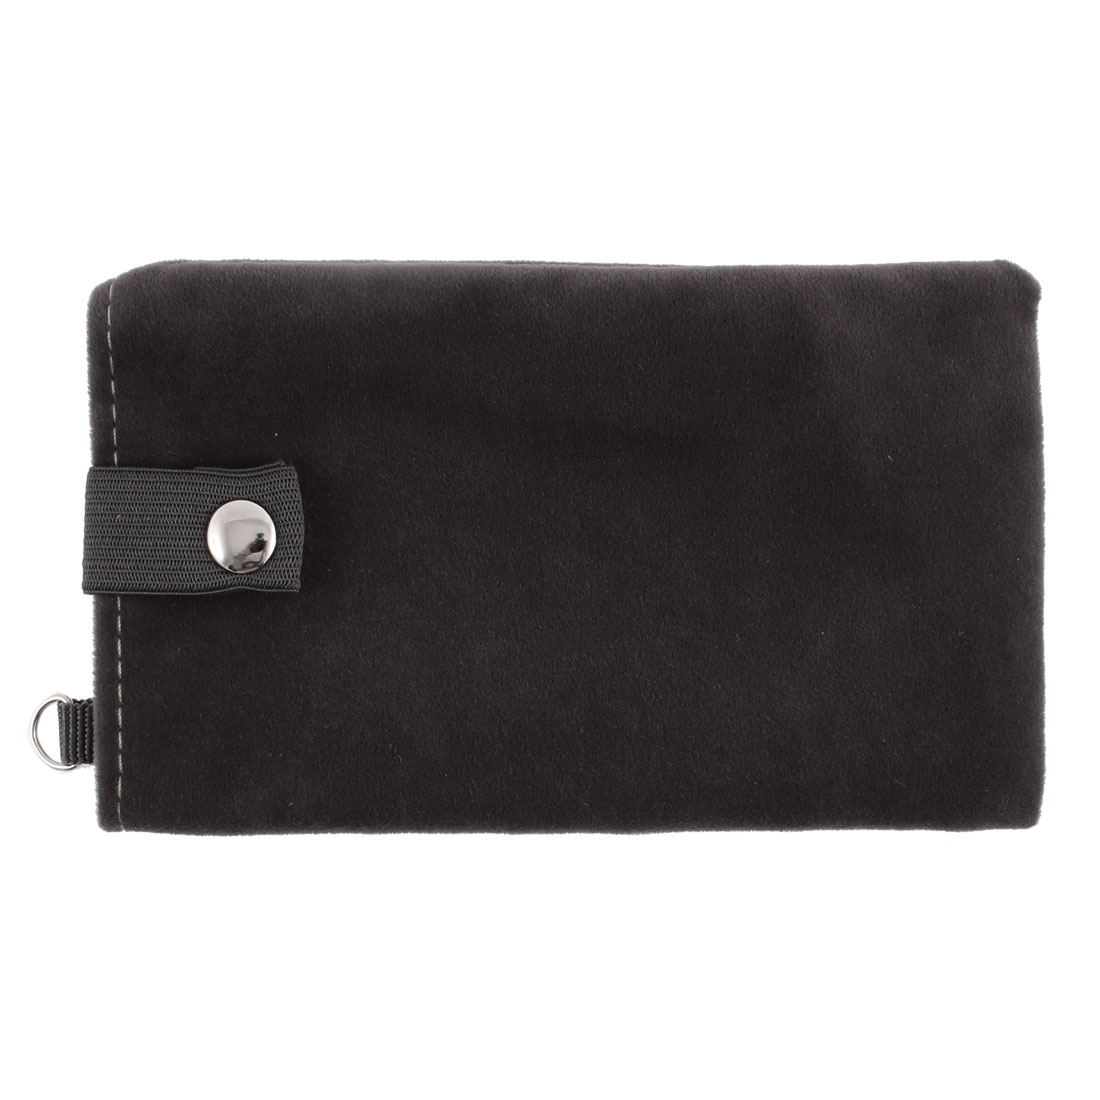 Velvet Magnetic Clasp Button Cell Phone Pouch Sleeve Bag Black Gray 16x9.5cm